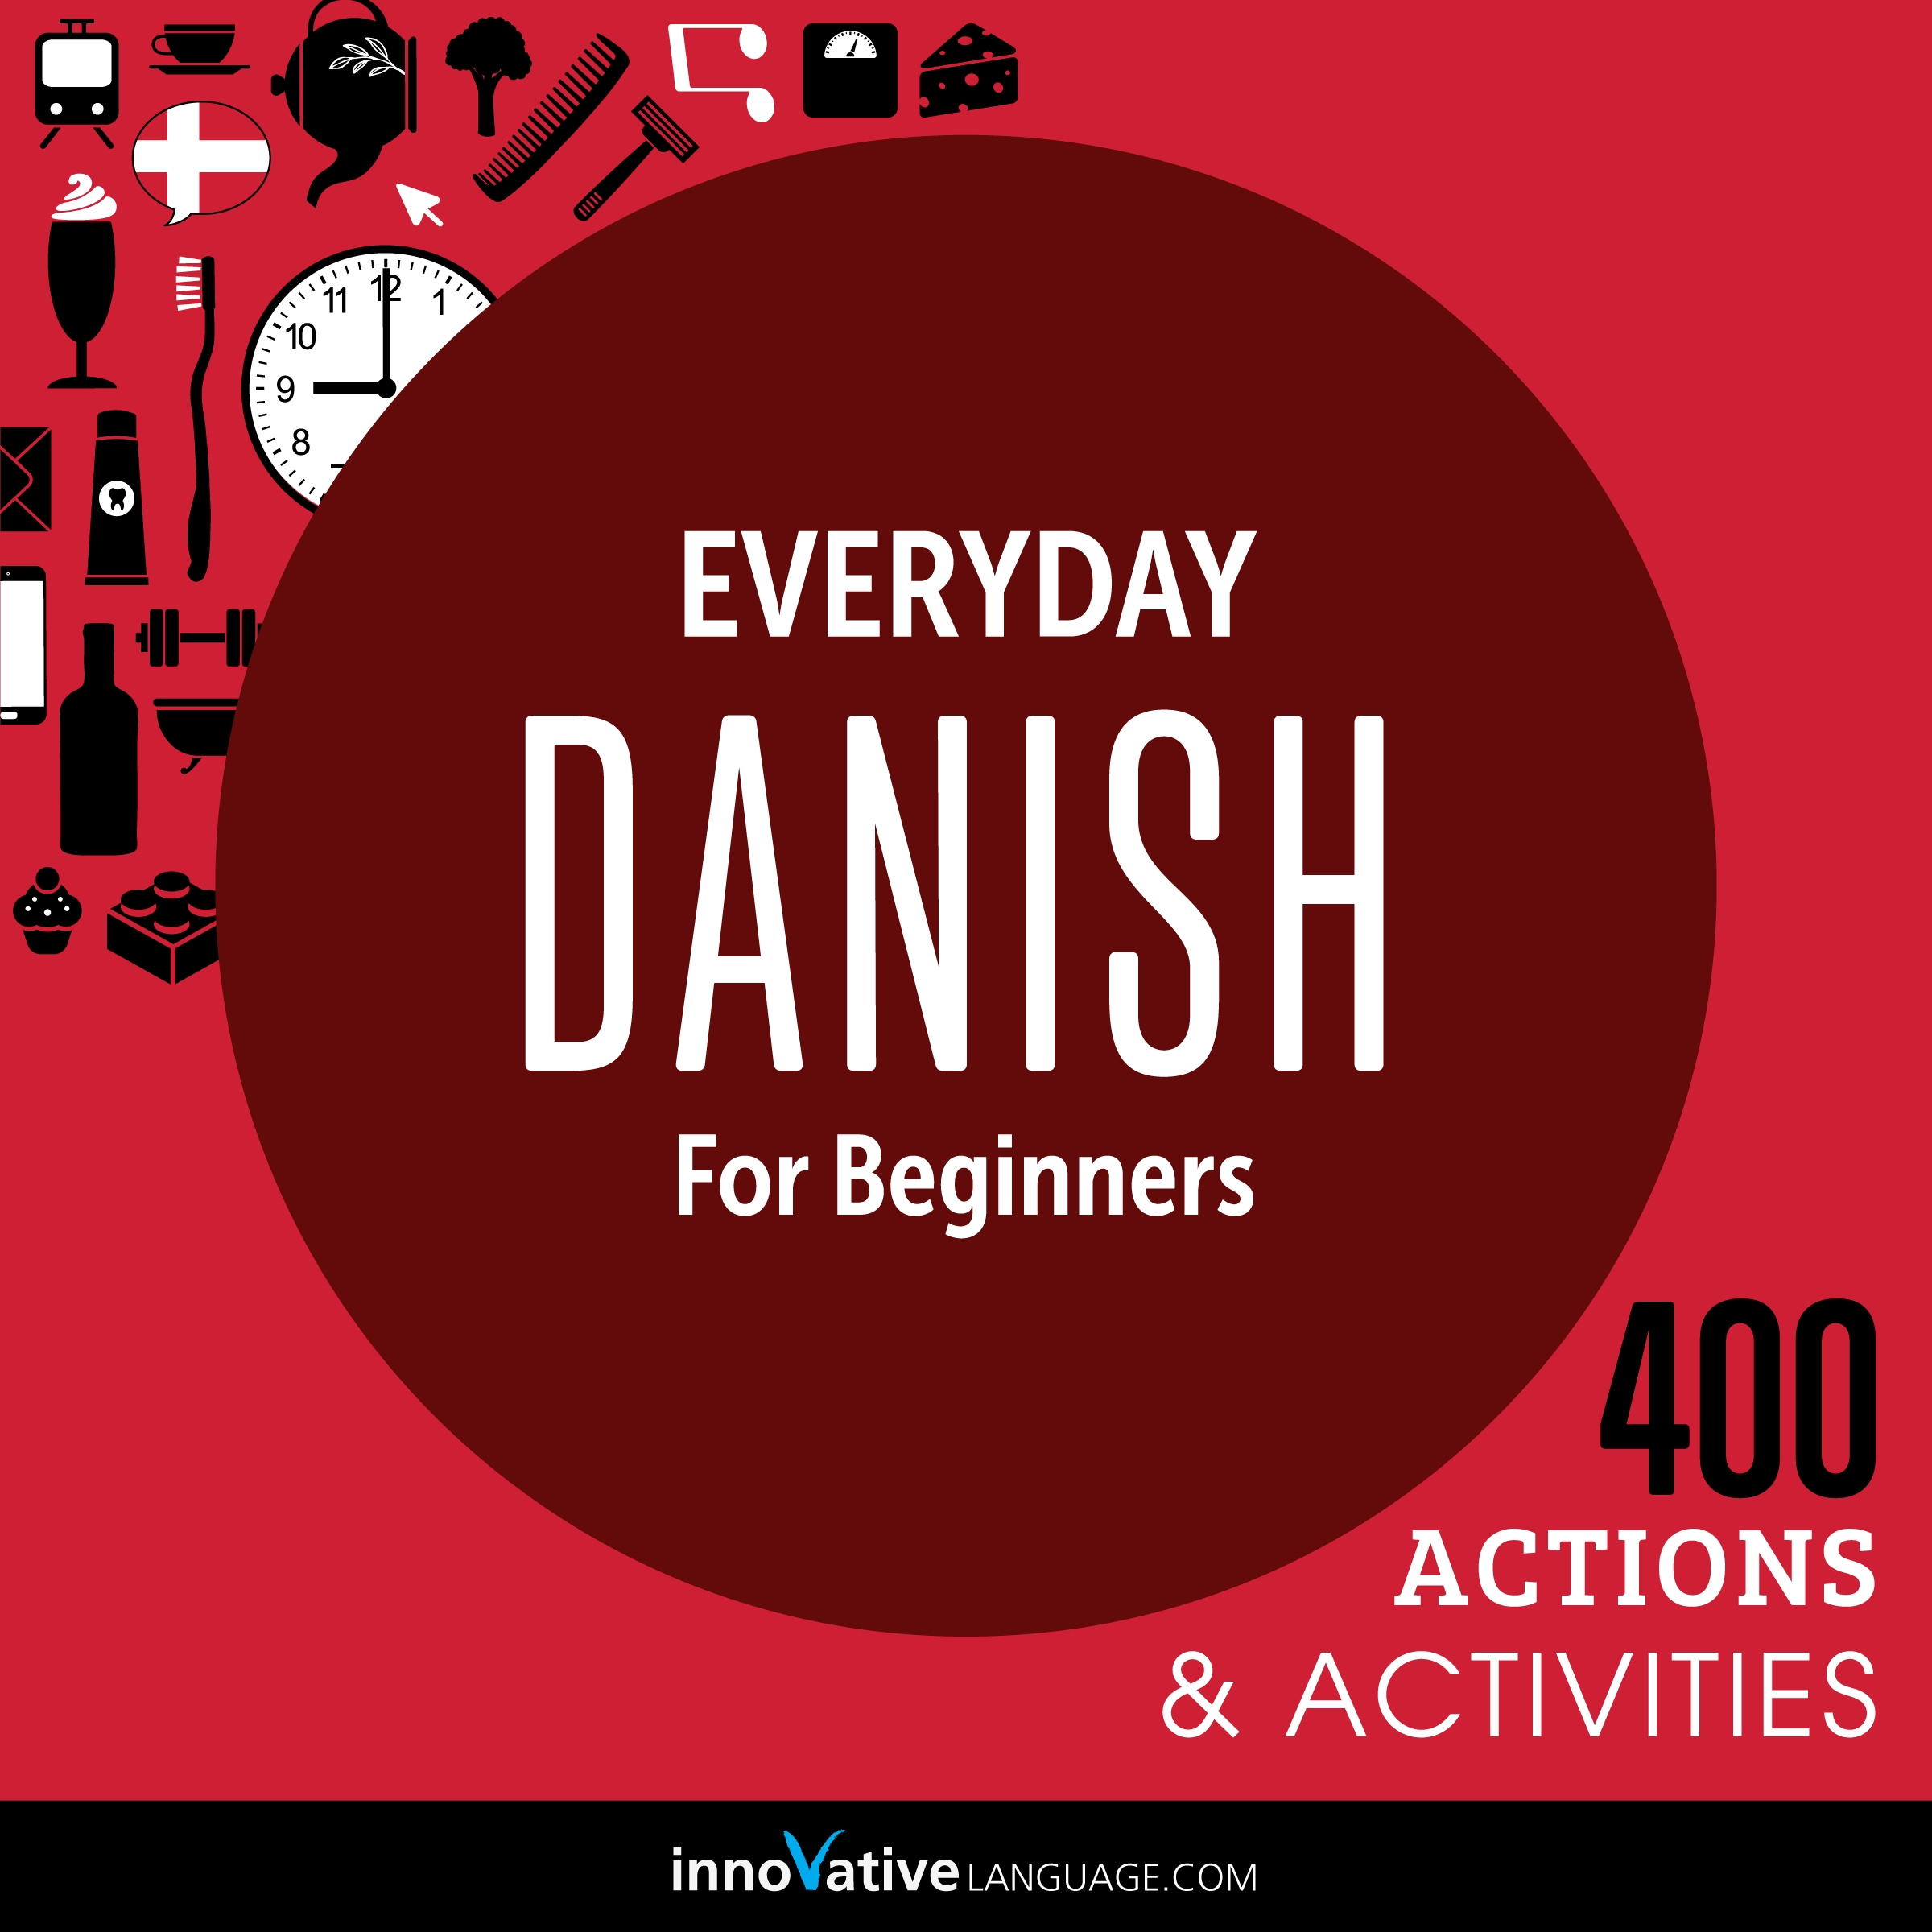 [Audiobook] Everyday Danish for Beginners - 400 Actions & Activities